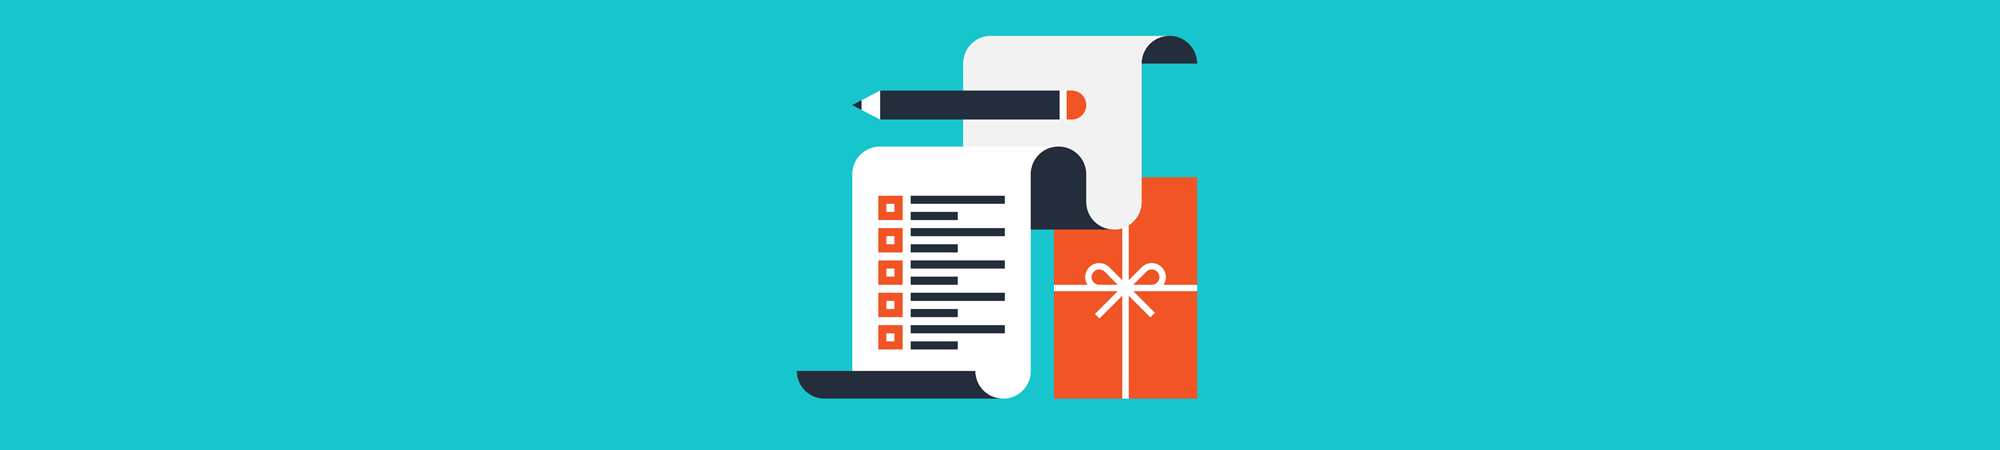 2000x450 Everything You Need For An Ecommerce Holiday Sale